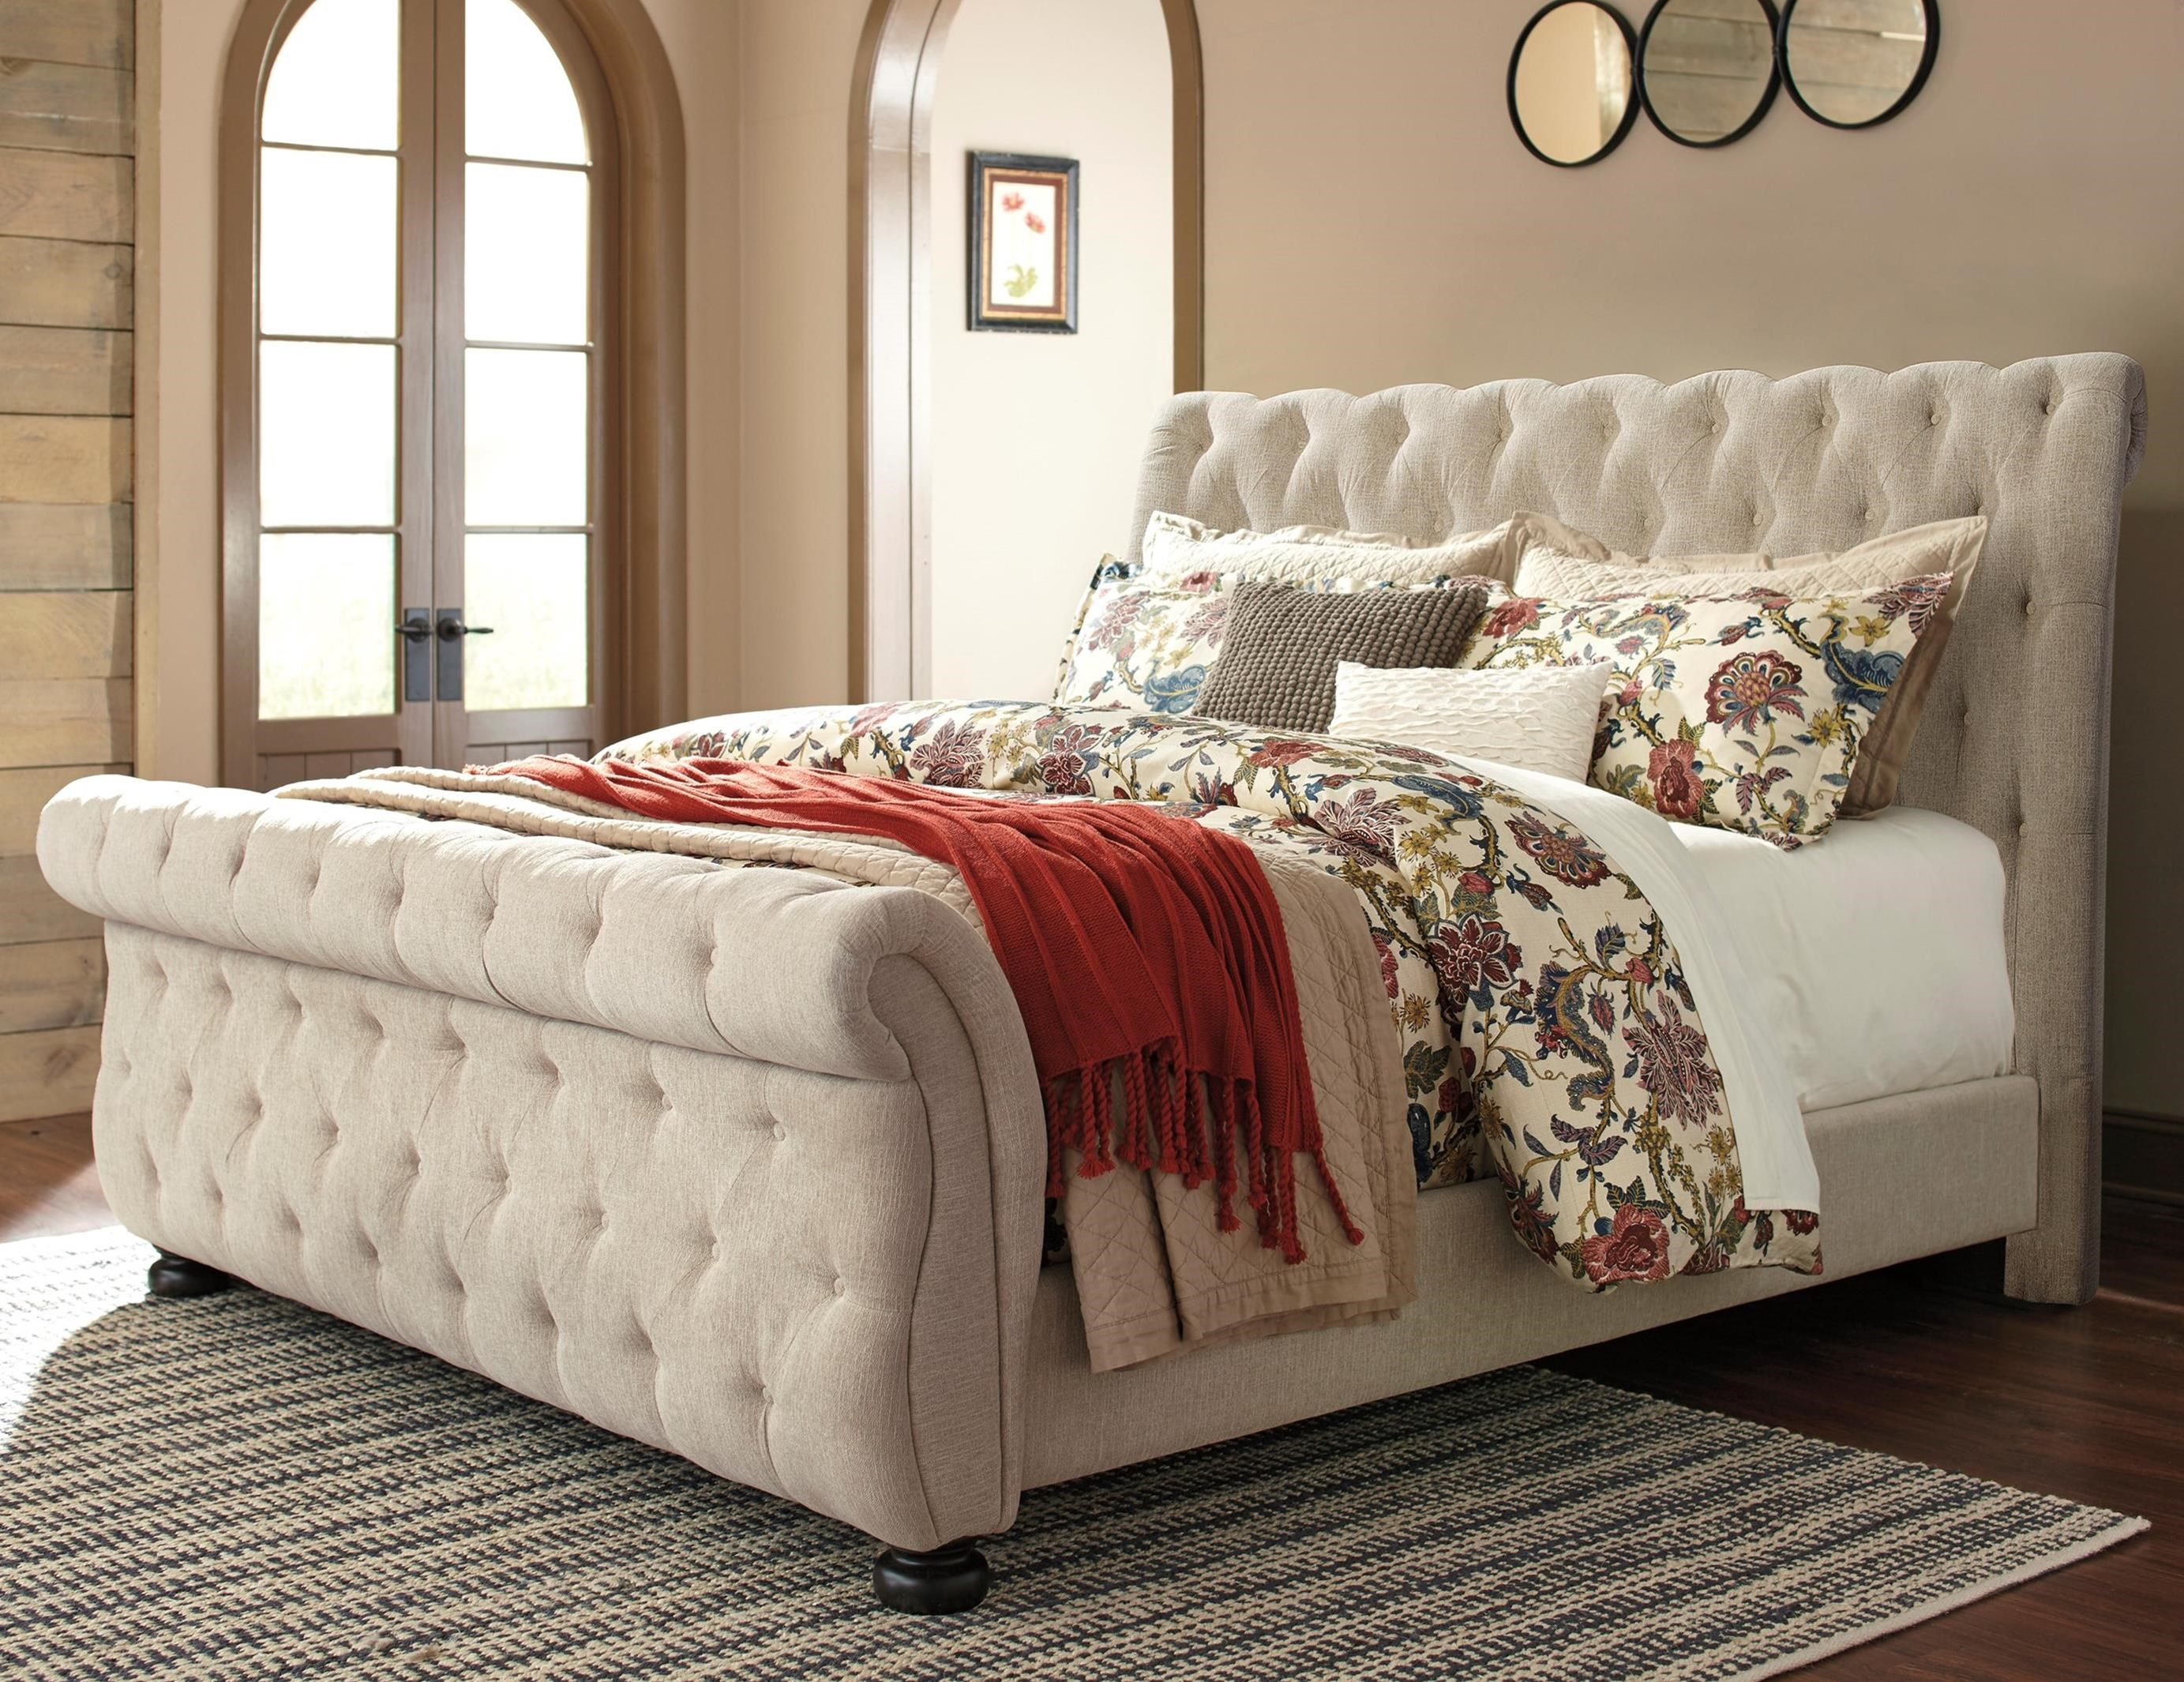 Signature Design By Ashley Willenburg Queen Upholstered Sleigh Bed With Tufting Household